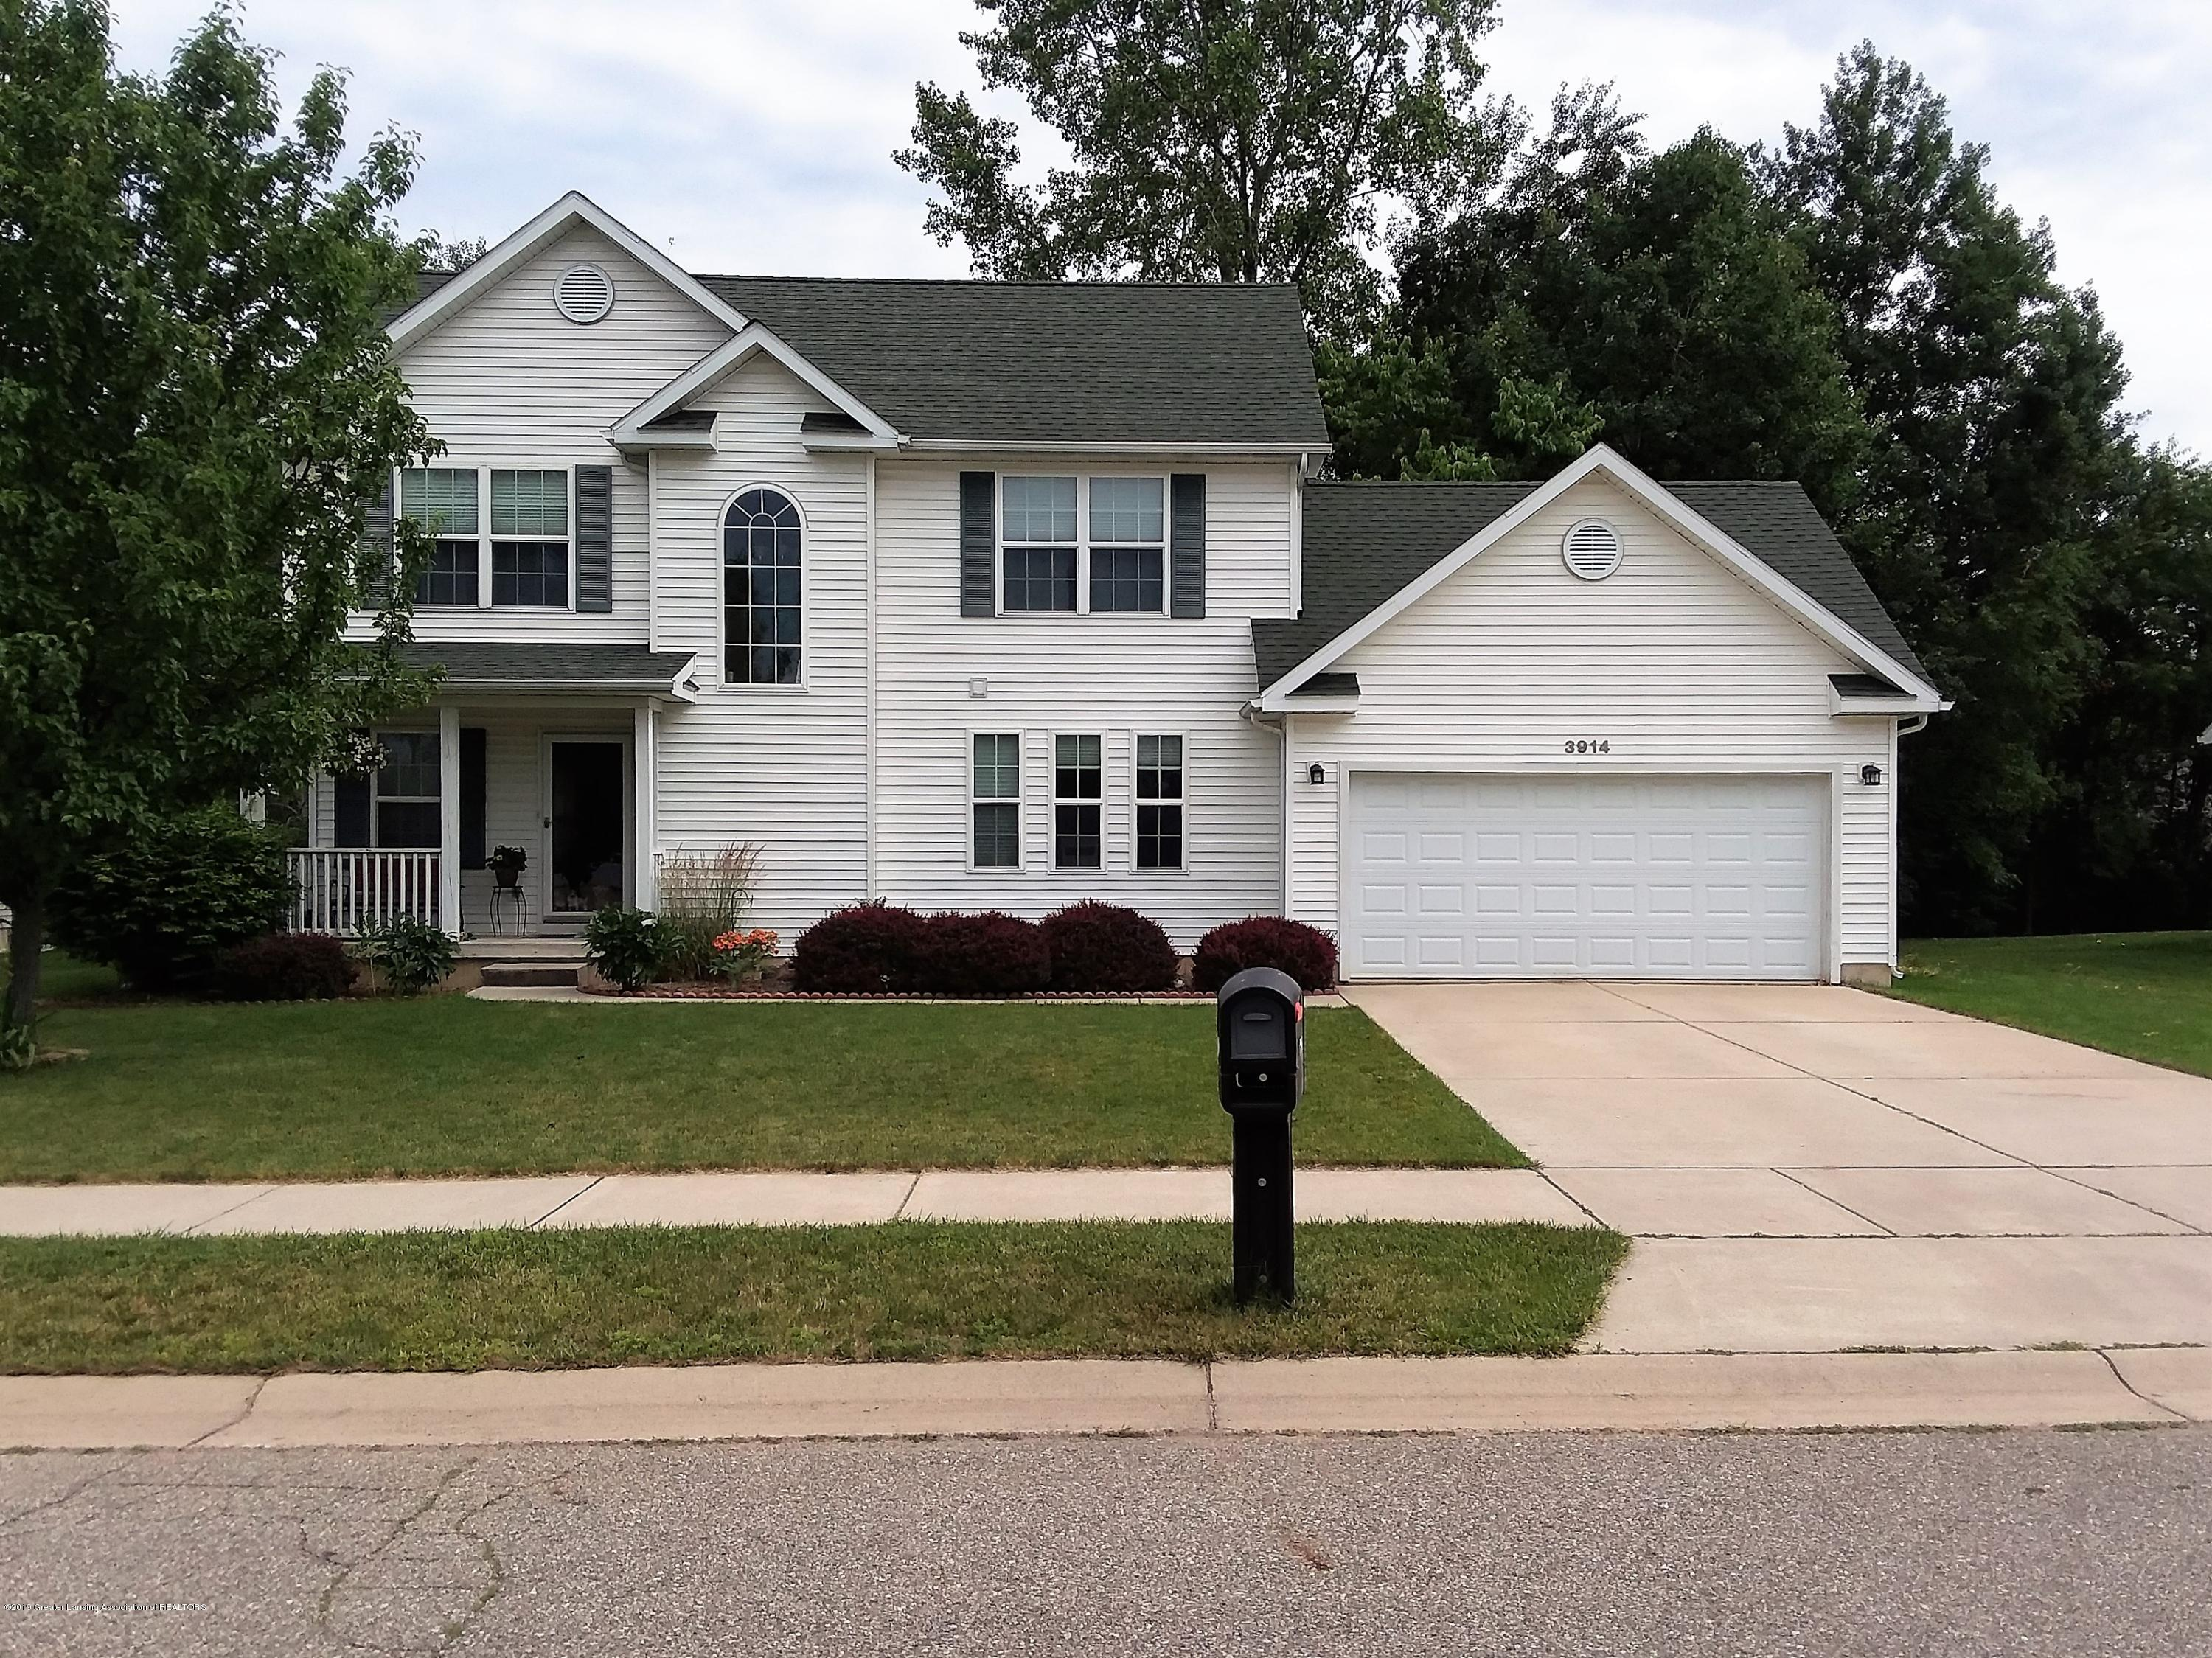 3914 Calypso Rd - Front of Home - 1